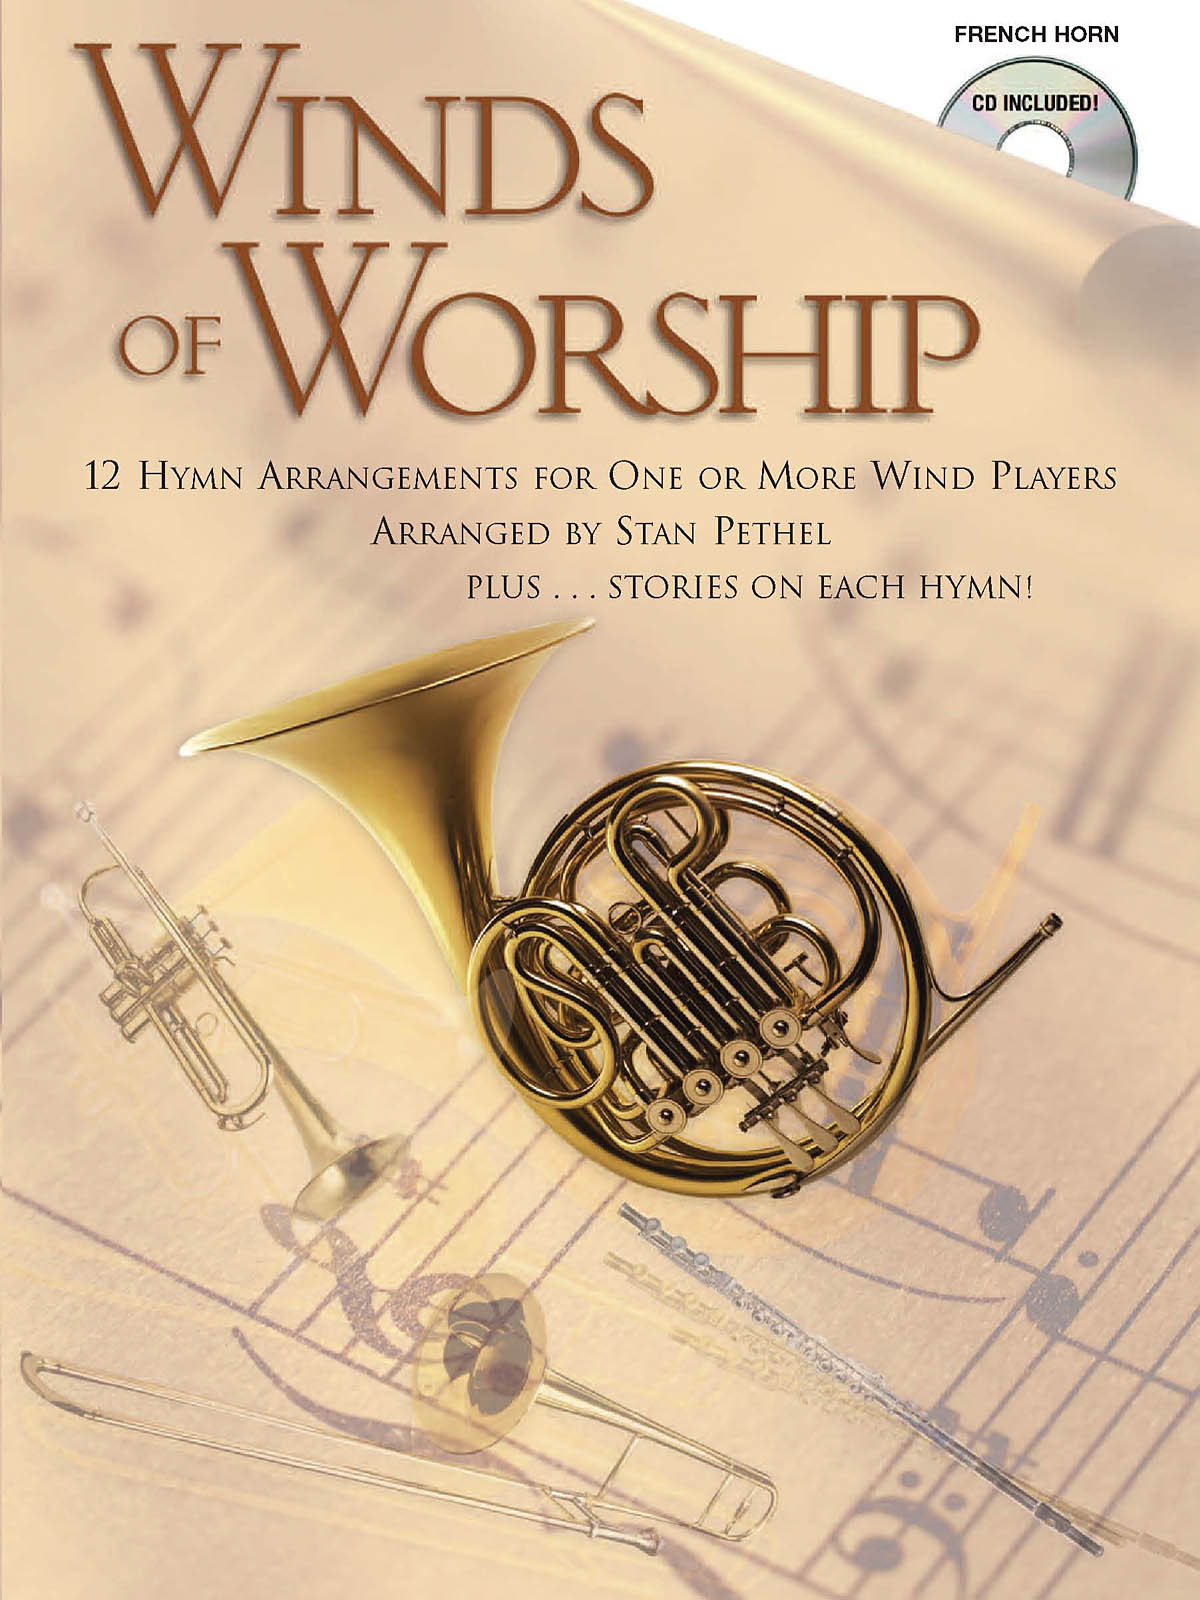 Winds of Worship: French Horn: Instrumental Album